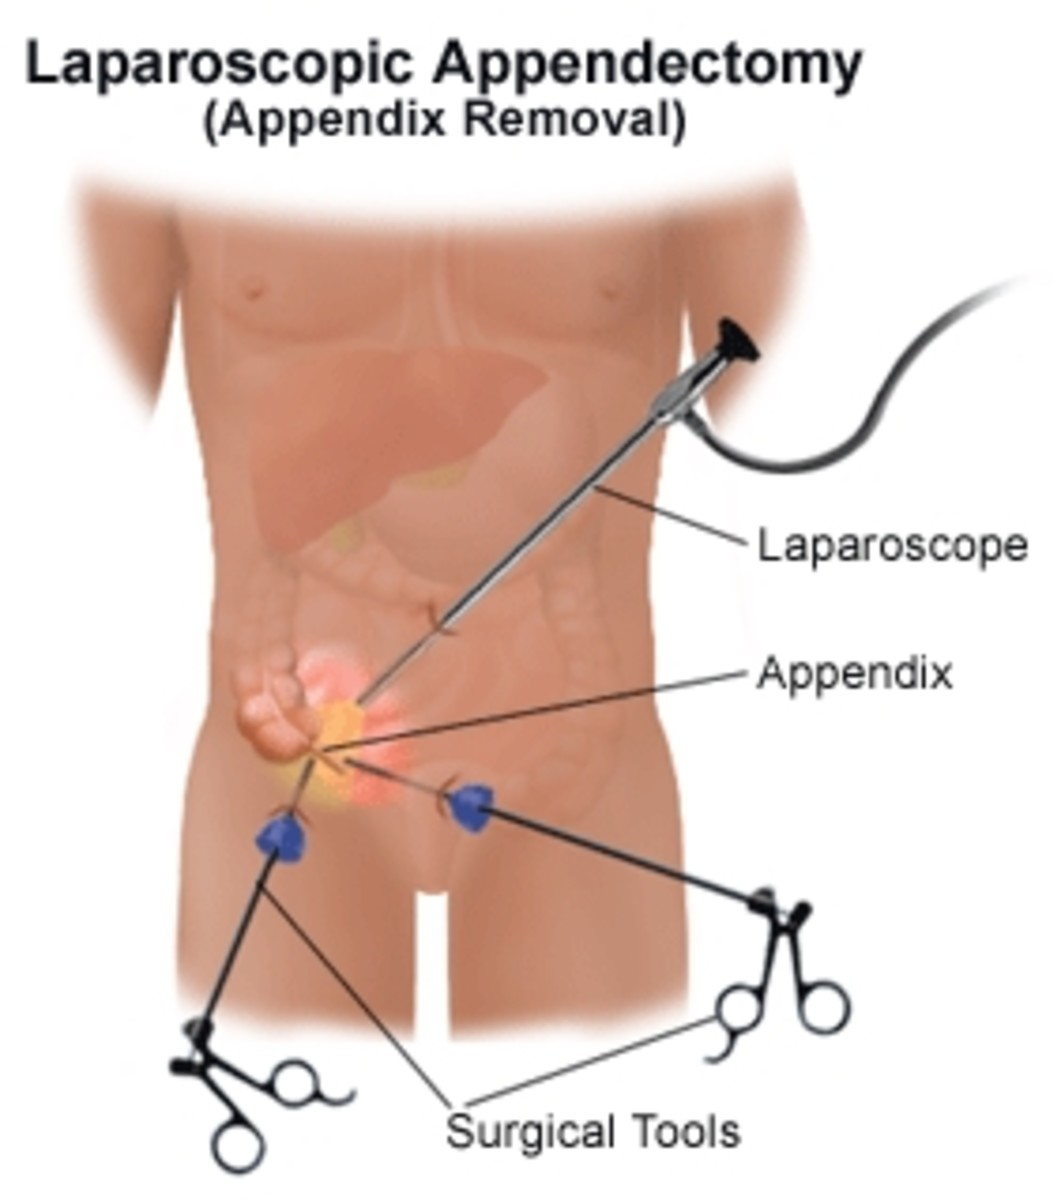 Image of laparascopic appendectomy. 3 or 4 small incisions made and appendix removed.